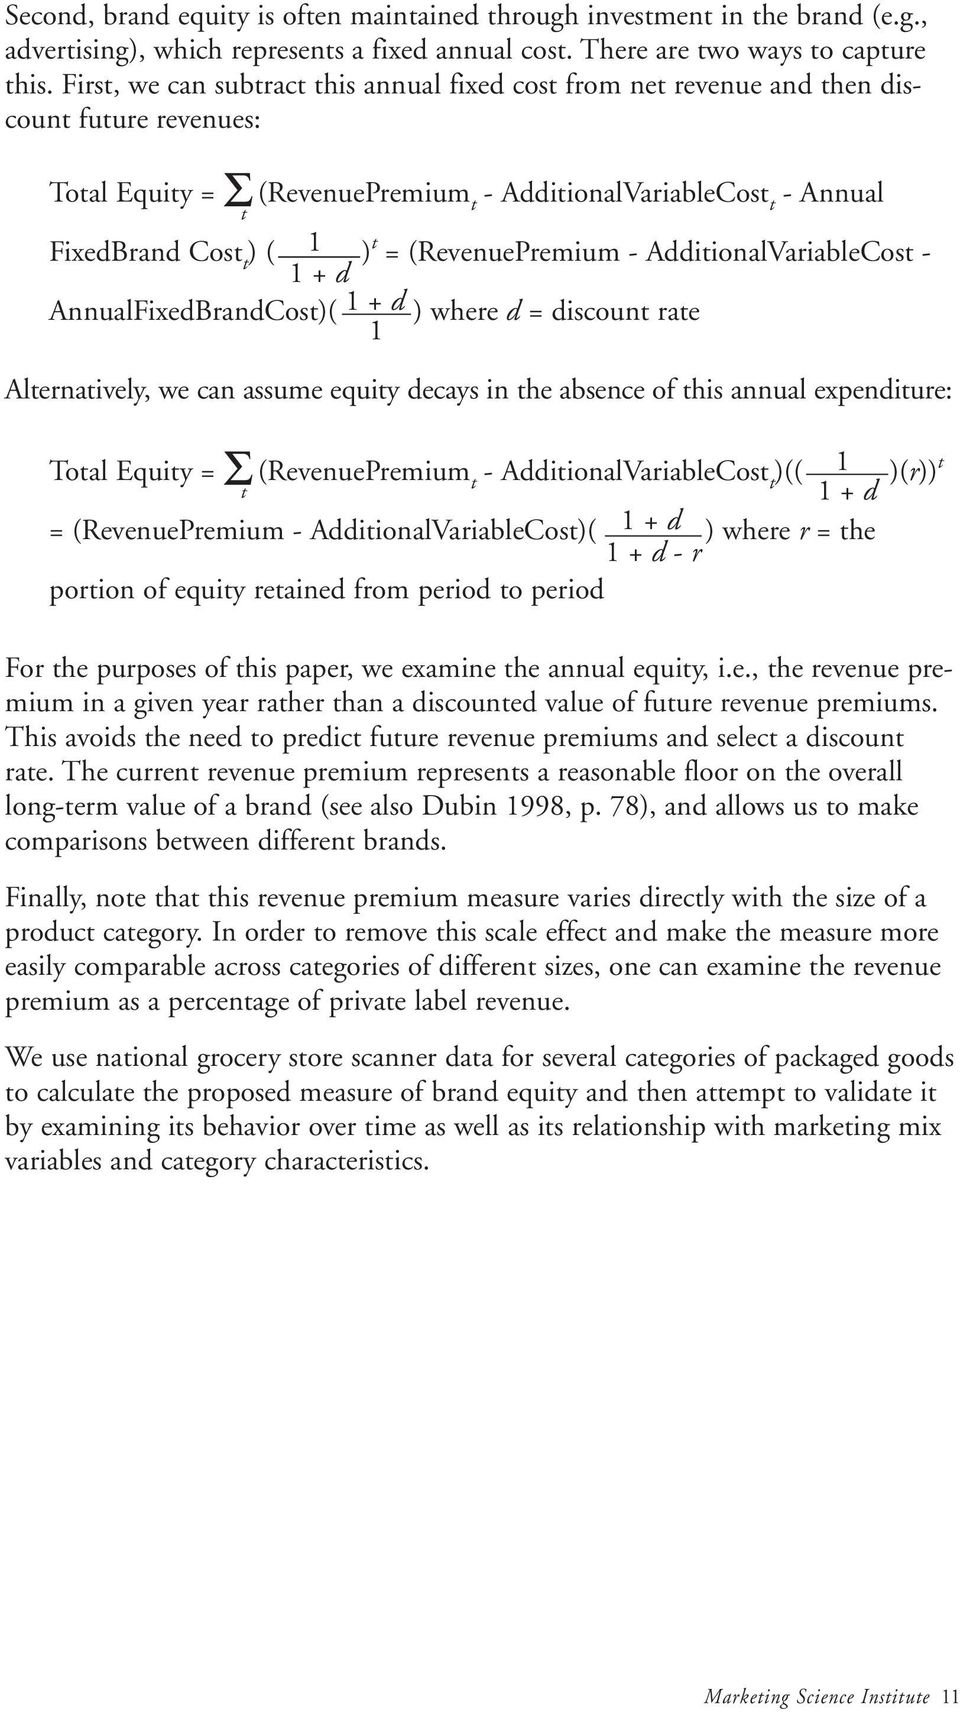 = (RevenuePremium - AdditionalVariableCost - 1 + d AnnualFixedBrandCost)( 1 + d ) where d = discount rate 1 Alternatively, we can assume equity decays in the absence of this annual expenditure: Total